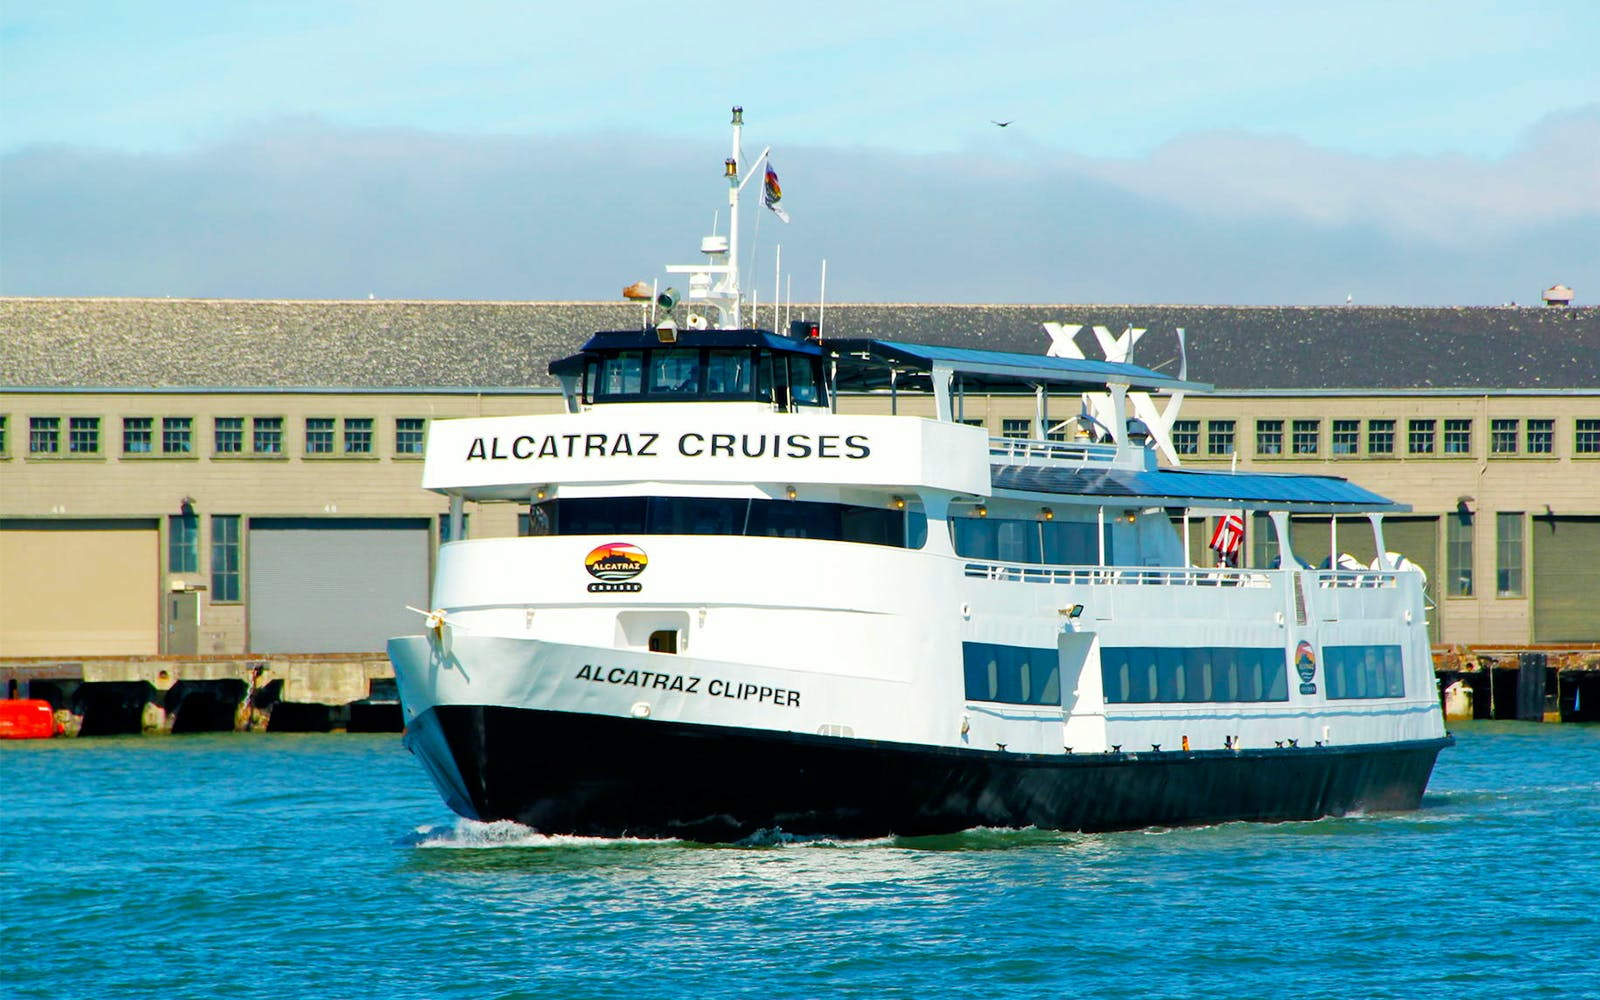 Alcatraz Cruises & Tours